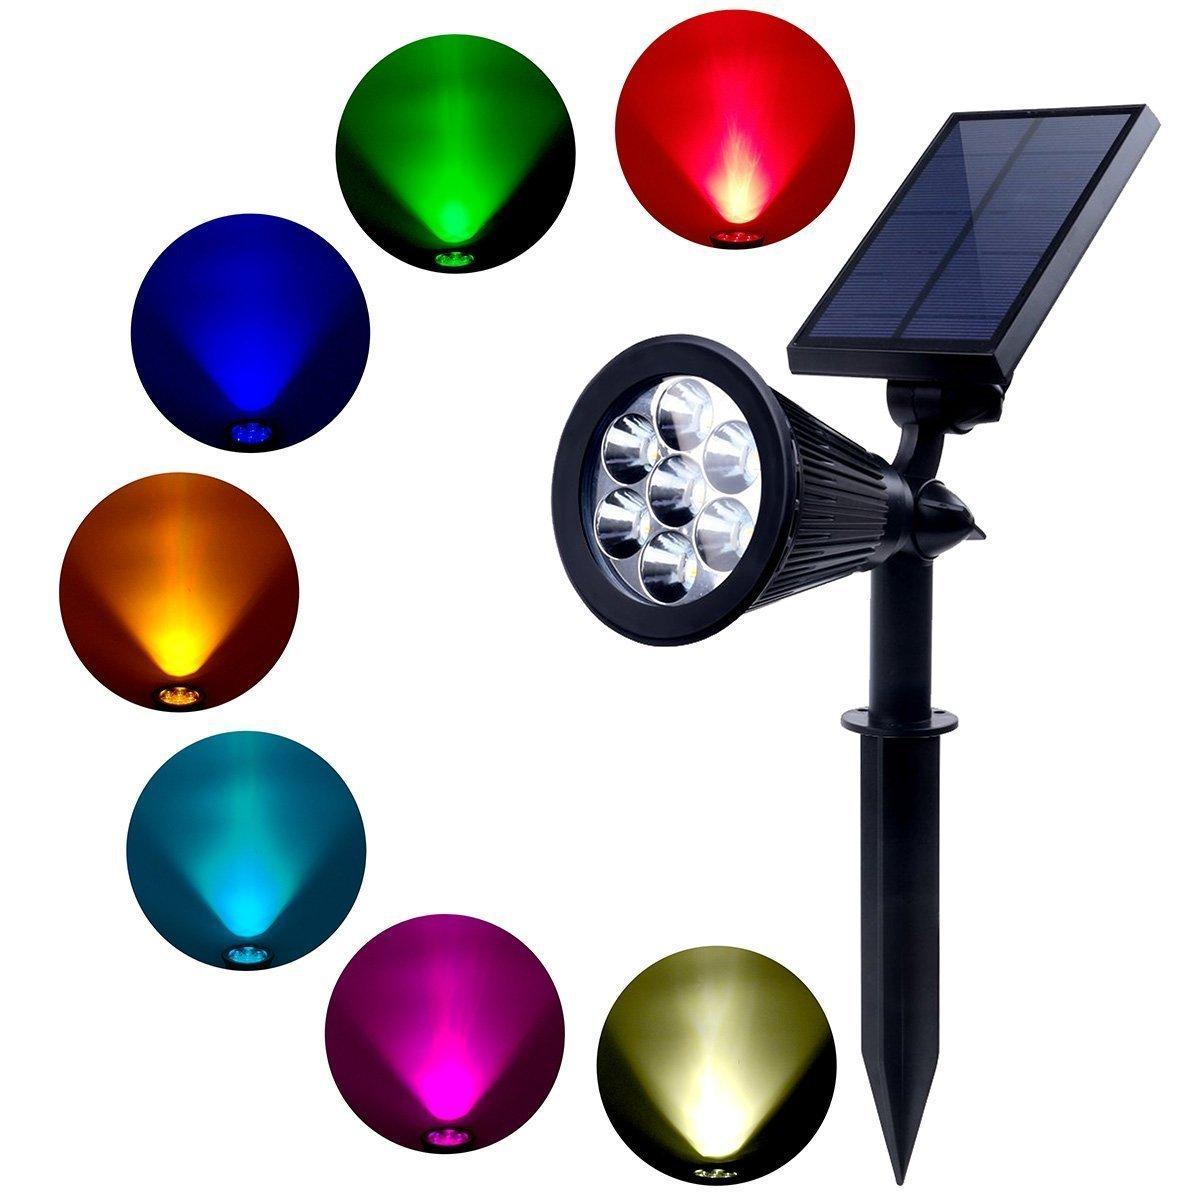 MEIO Outdoor Solar Spotlight, Multi-Colored 7 LED Adjustable Landscape Lighting, Waterproof Wall Light Solar Lights Outdoor with Auto On/Off for Garden Decorations (1 Pack)